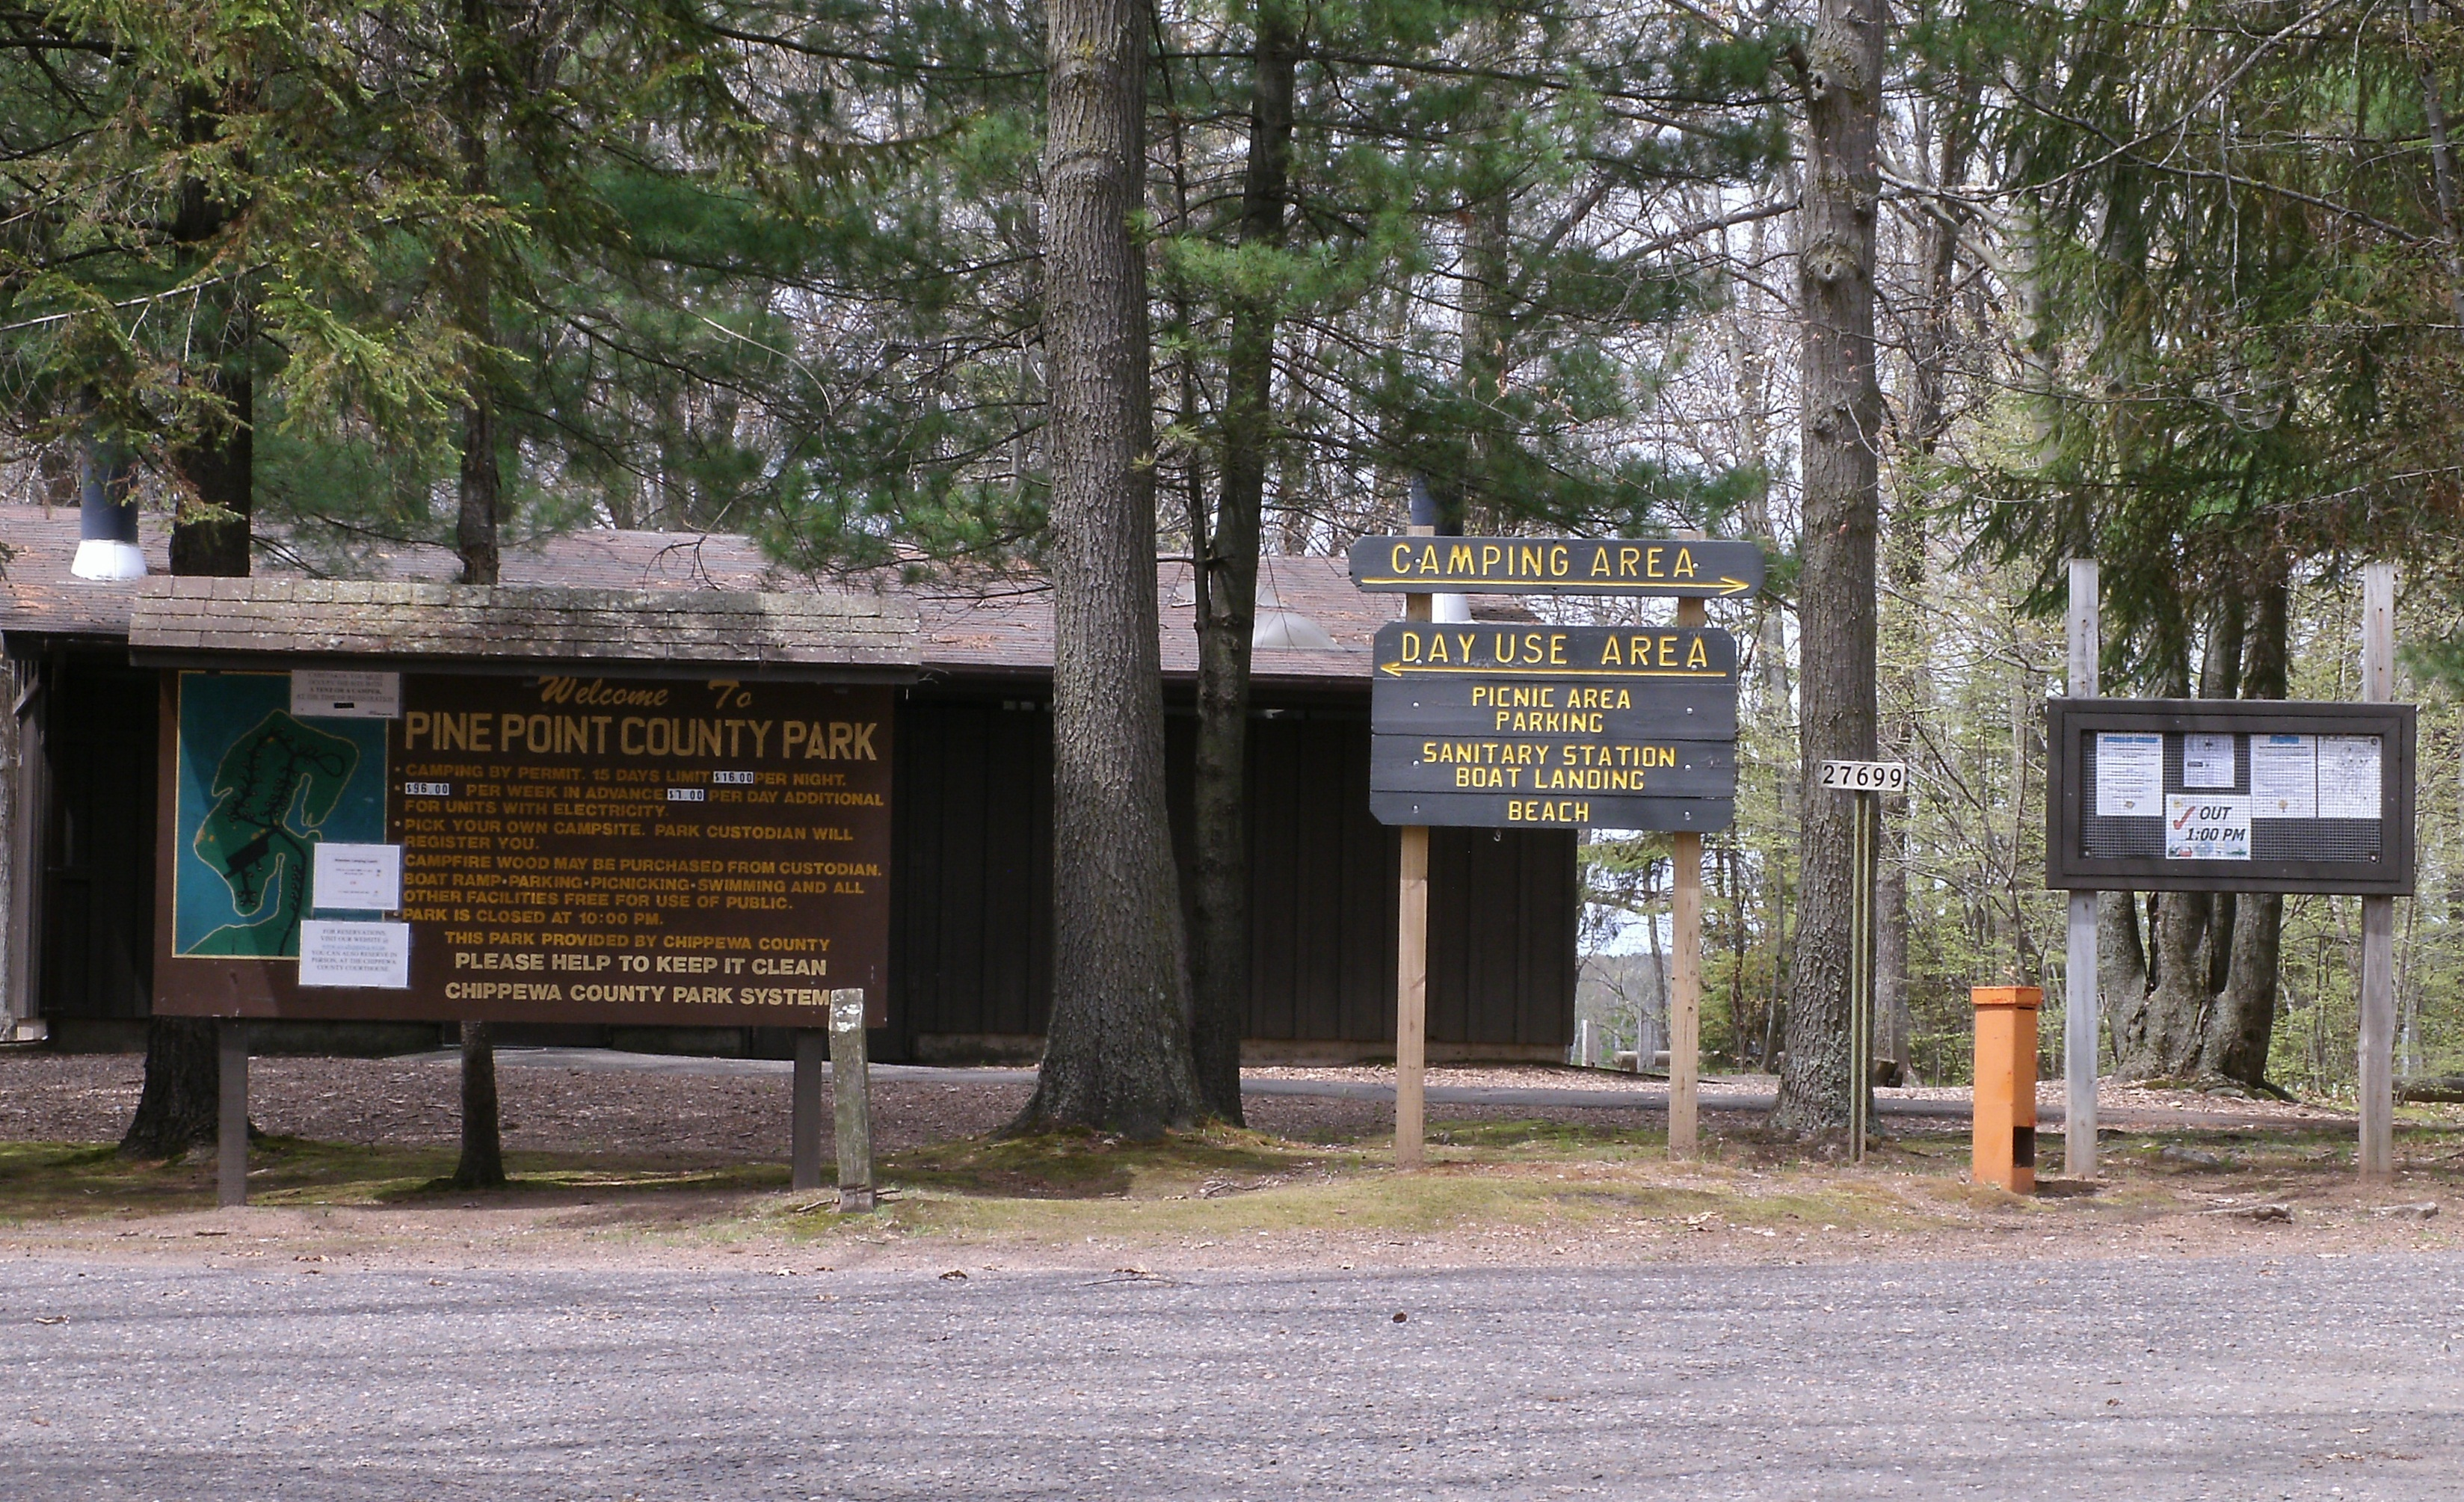 Chippewa County Parks Reservations 187 Camping 187 Pine Point